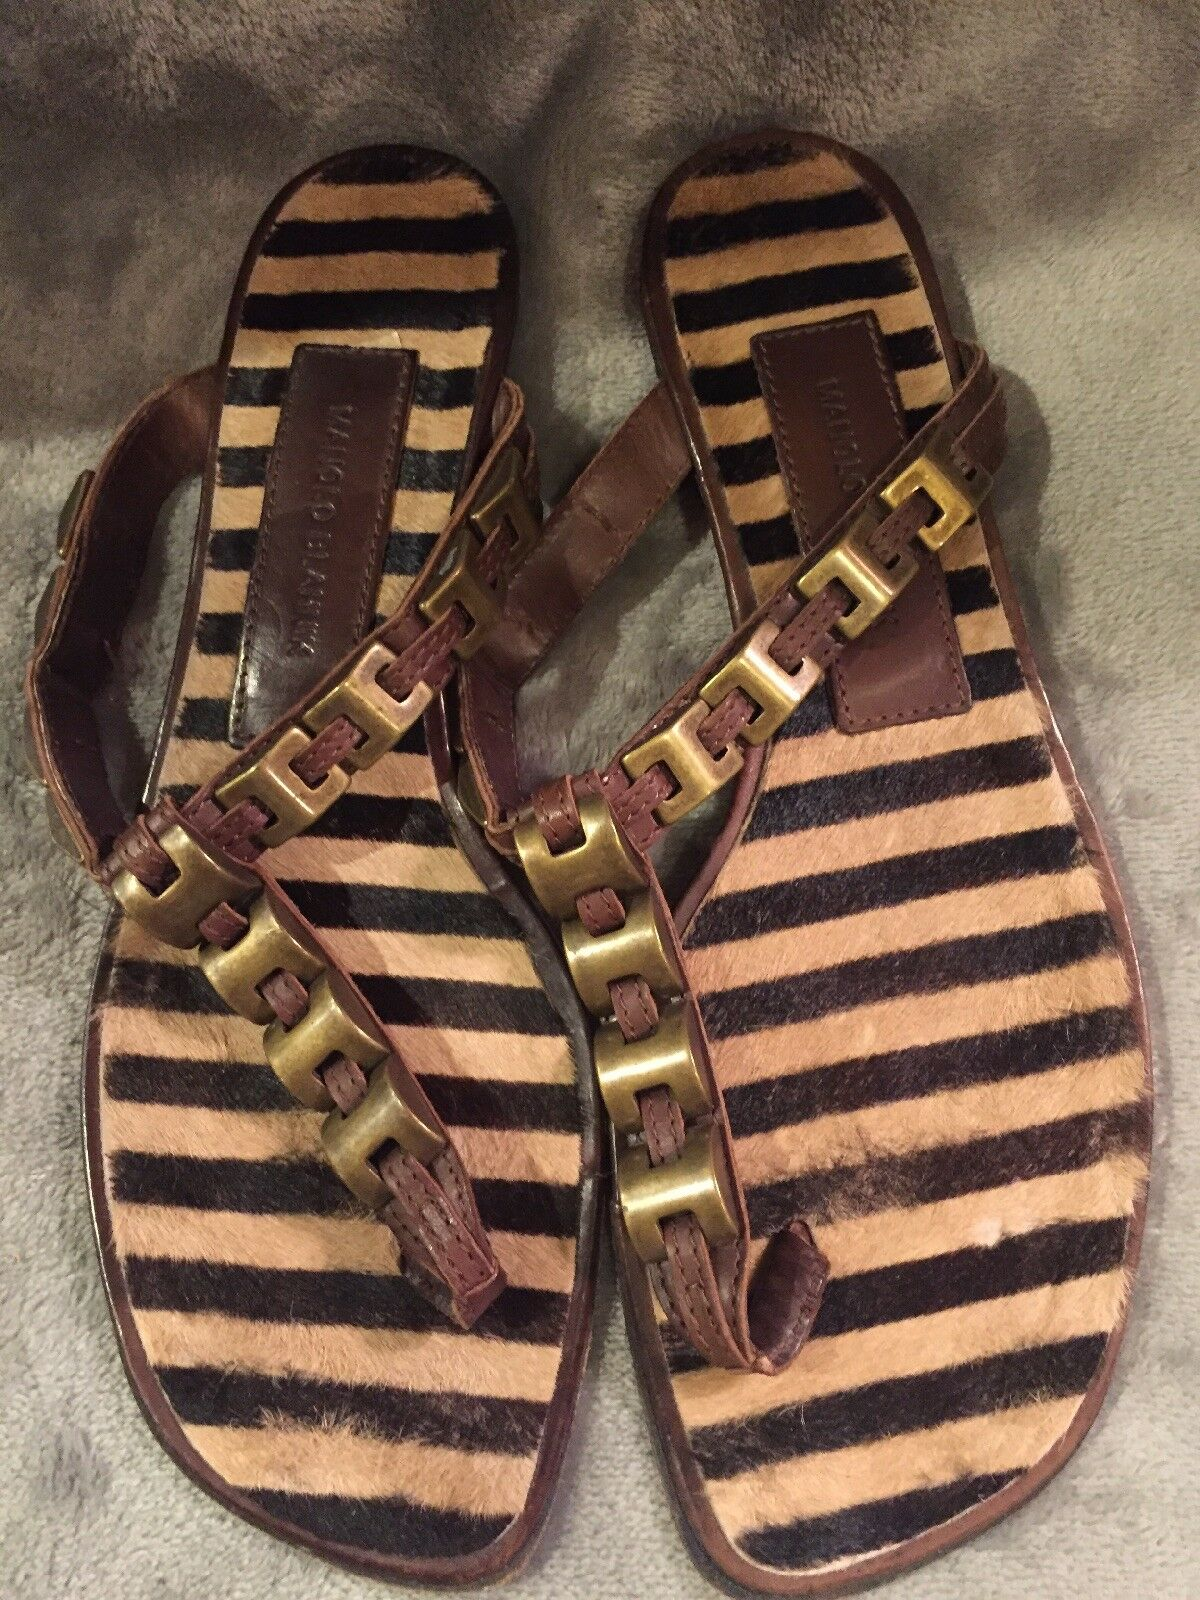 Manolo Blahnik Animal Fur Striped Samdals With gold Accents Size 8 1 2